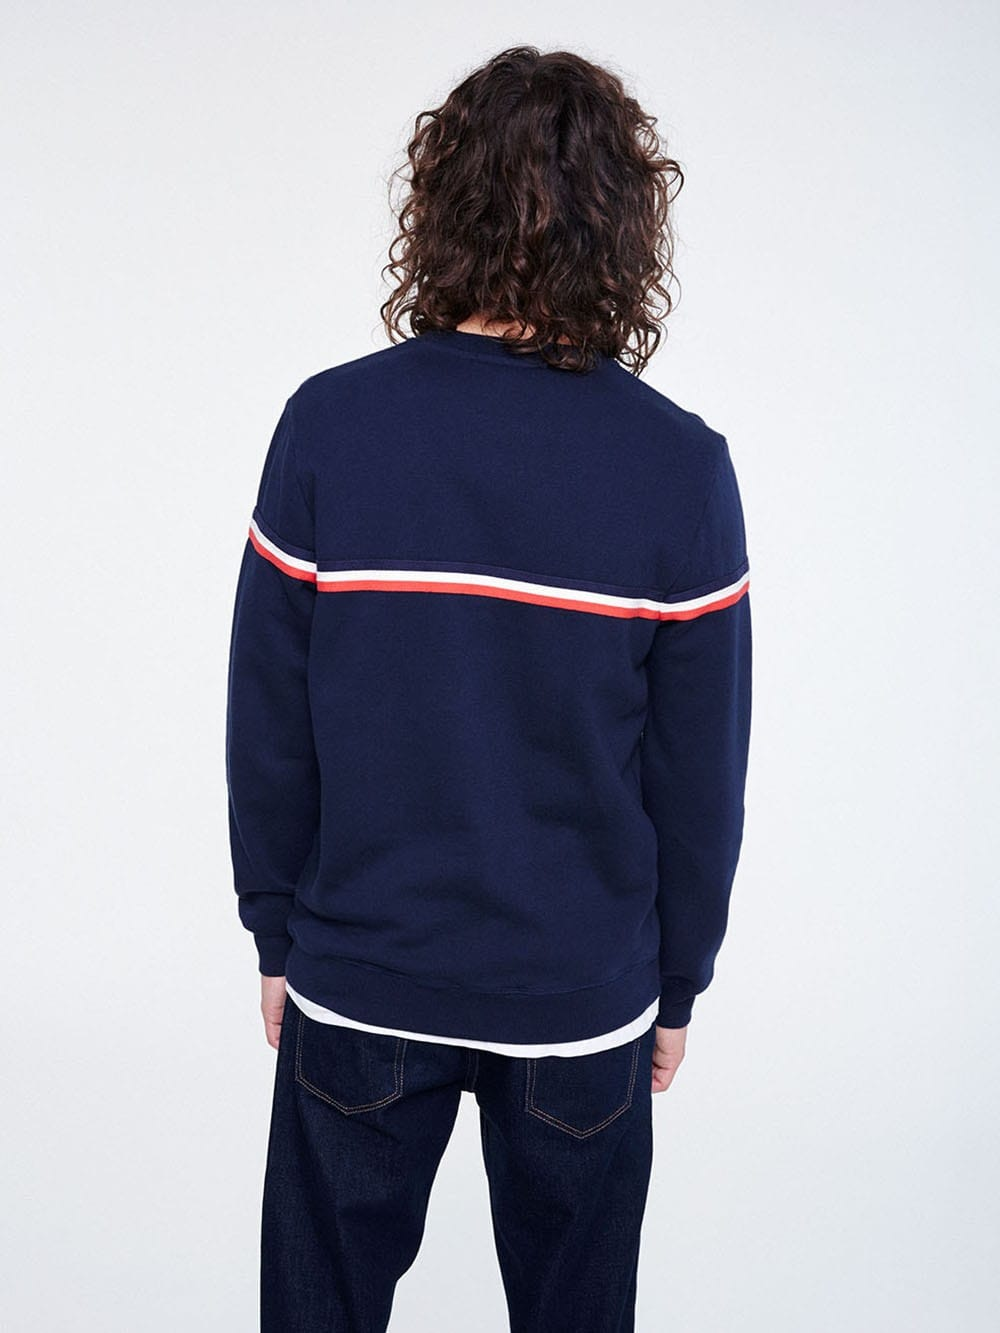 Blue jersey with red and white stripes made of organic cotton-Sono